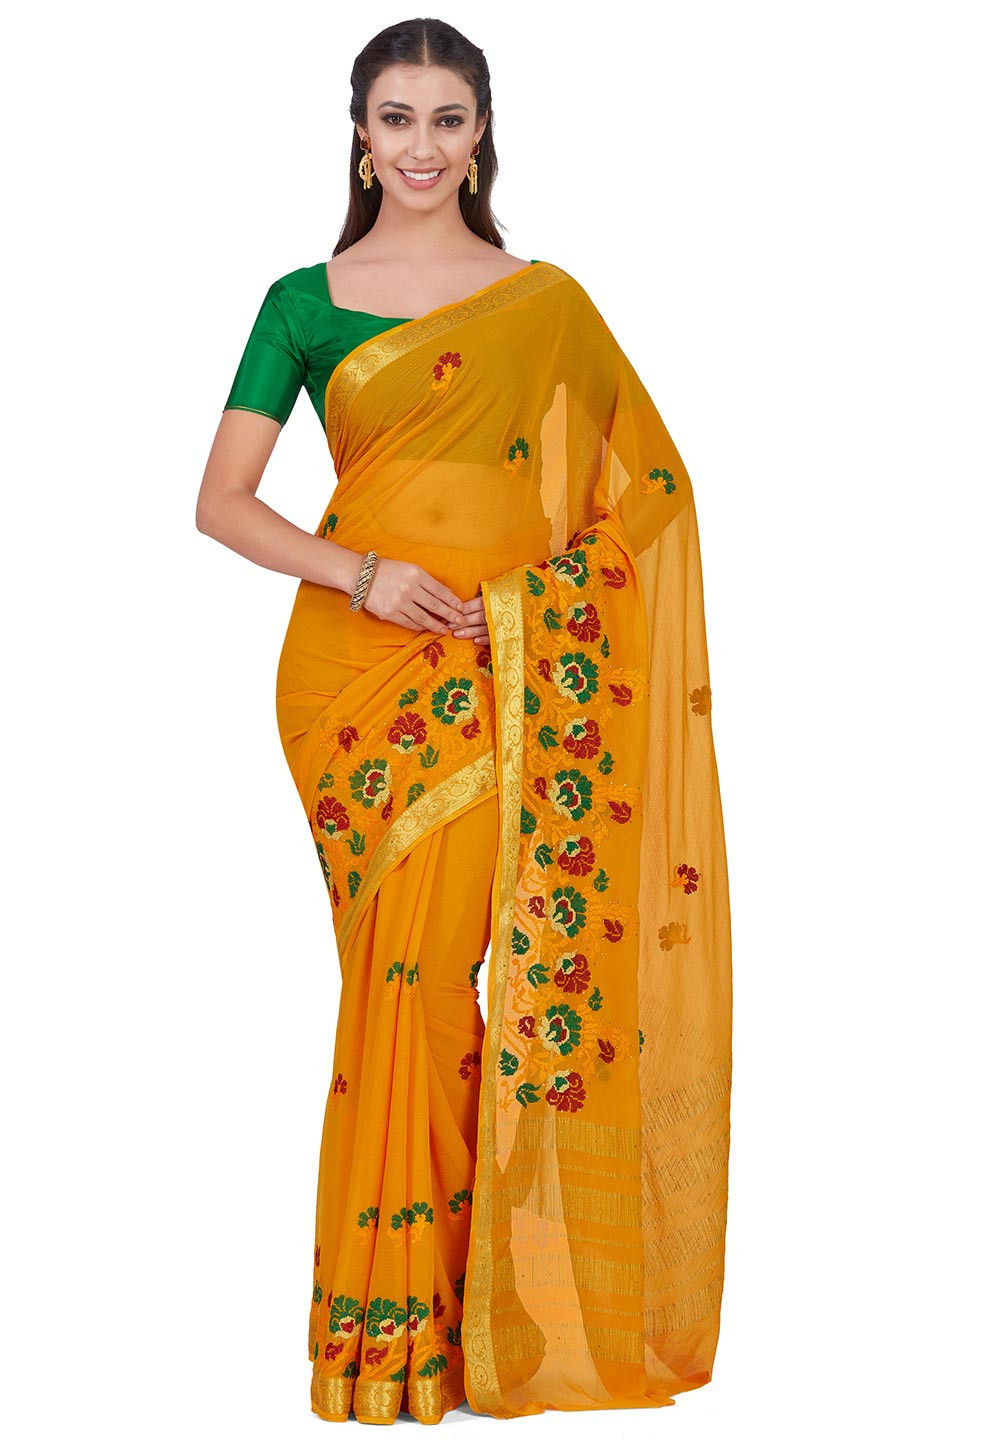 Embroidered Chiffon Saree in Mustard